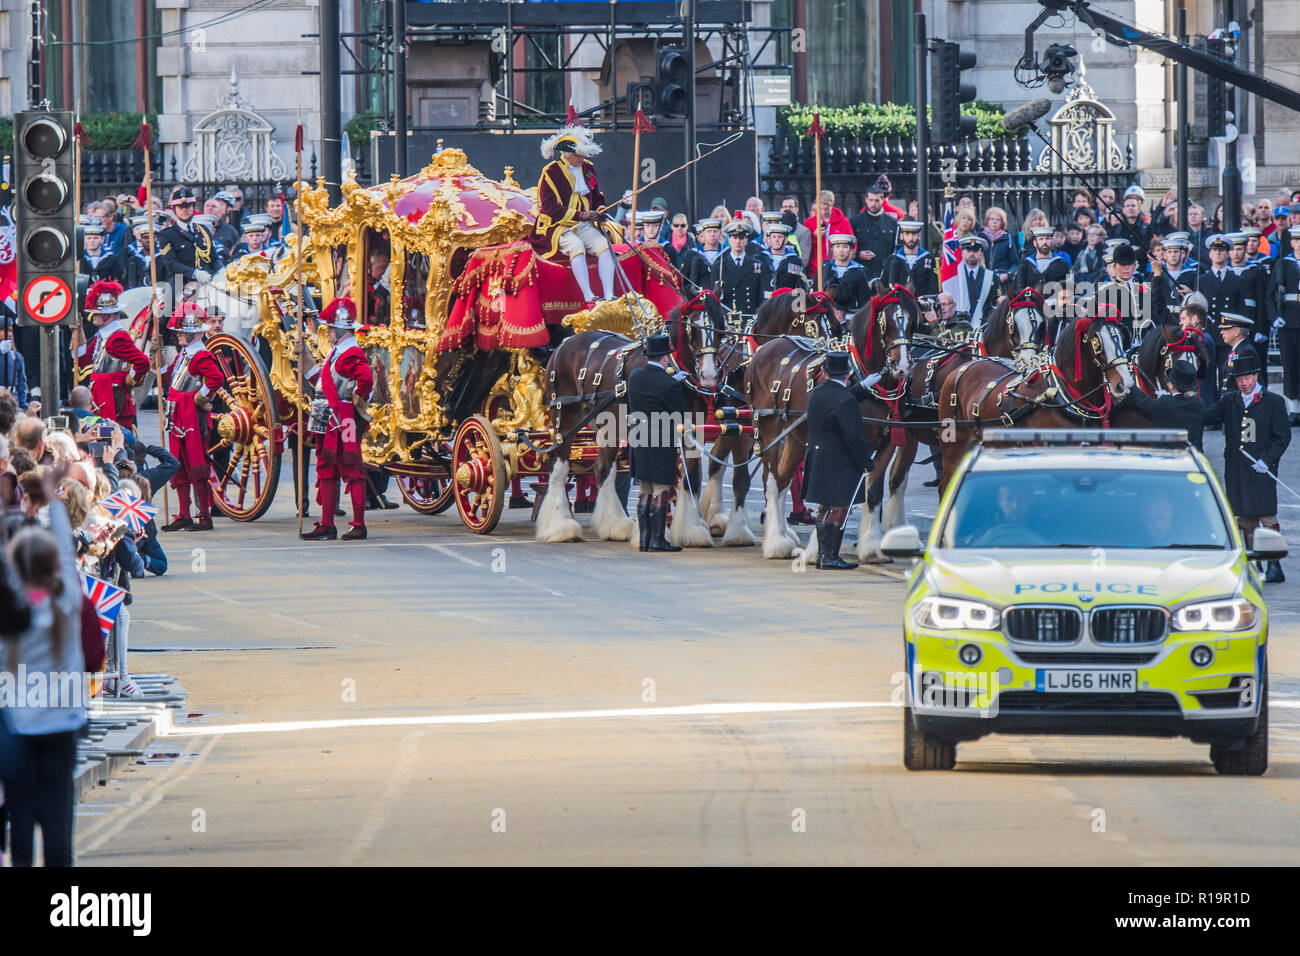 London, UK. 10th Nov, 2018. The Mayor arrives at Bank - The new Lord Mayor (Peter Estlin, the 691st) was sworn in yesterday. To celebrate, today is the annual Lord Mayor's Show. It includes Military bands, vintage buses, Dhol drummers, a combine harvester and a giant nodding dog in the three-mile-long procession. It brings together over 7,000 people, 200 horses and 140 motor and steam-driven vehicles in an event that dates back to the 13th century. The Lord Mayor of the City of London rides in the gold State Coach. Credit: Guy Bell/Alamy Live News - Stock Image